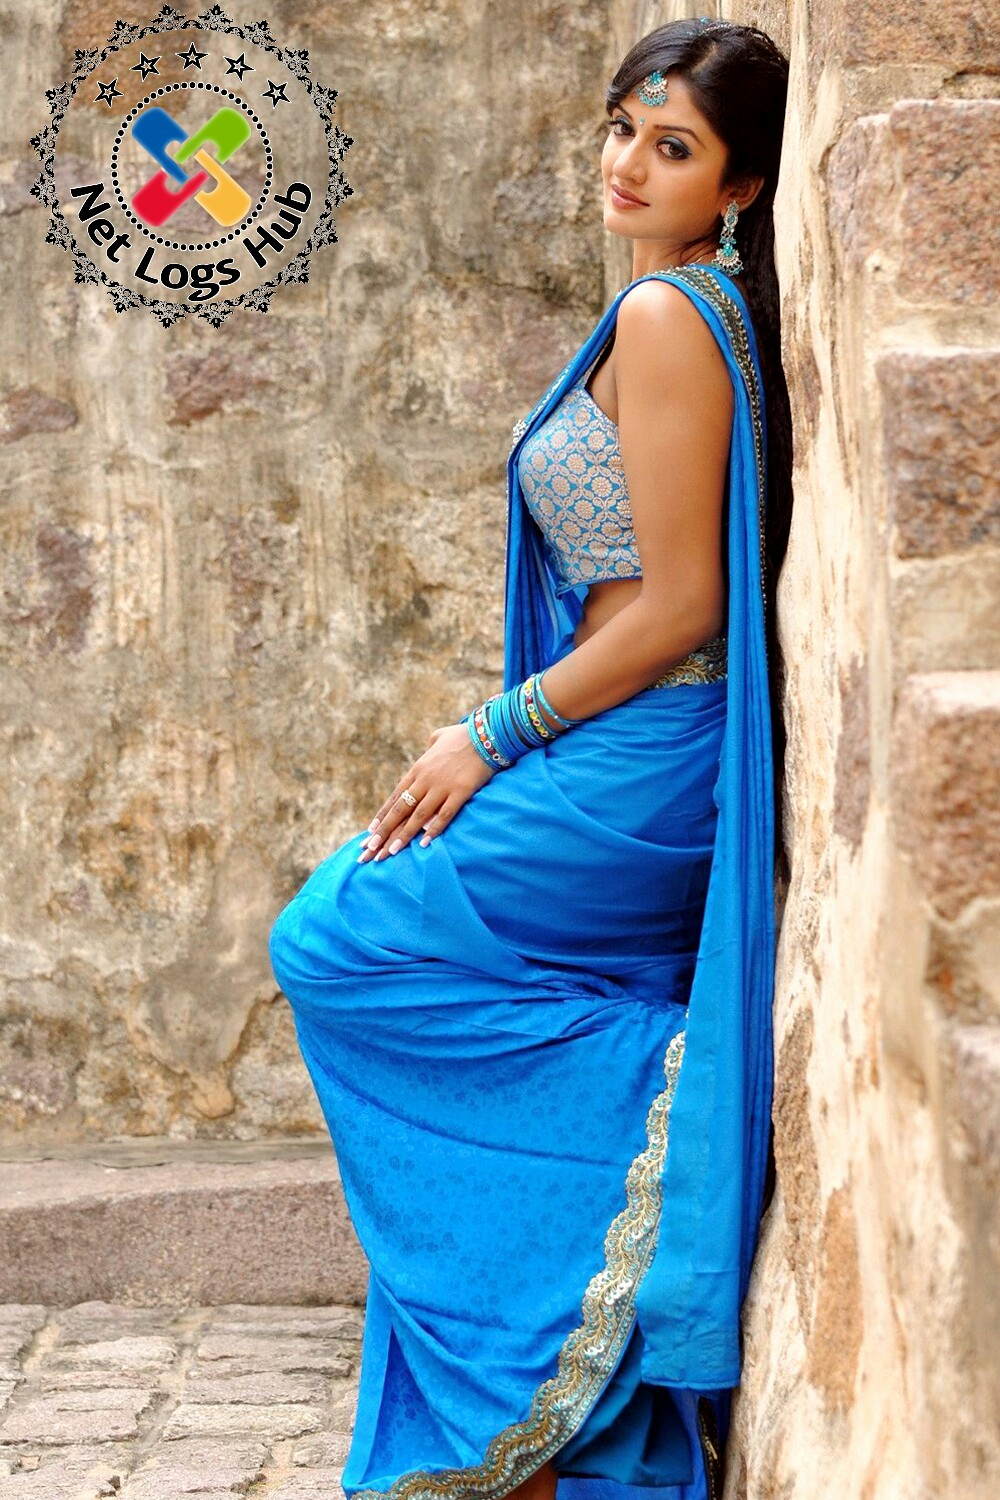 Beautiful Malayalam Heroine Vimala Raman Spicy Hot Side View Boobs and Navel Gallery in Sexy Blue Saree - NetLogsHub